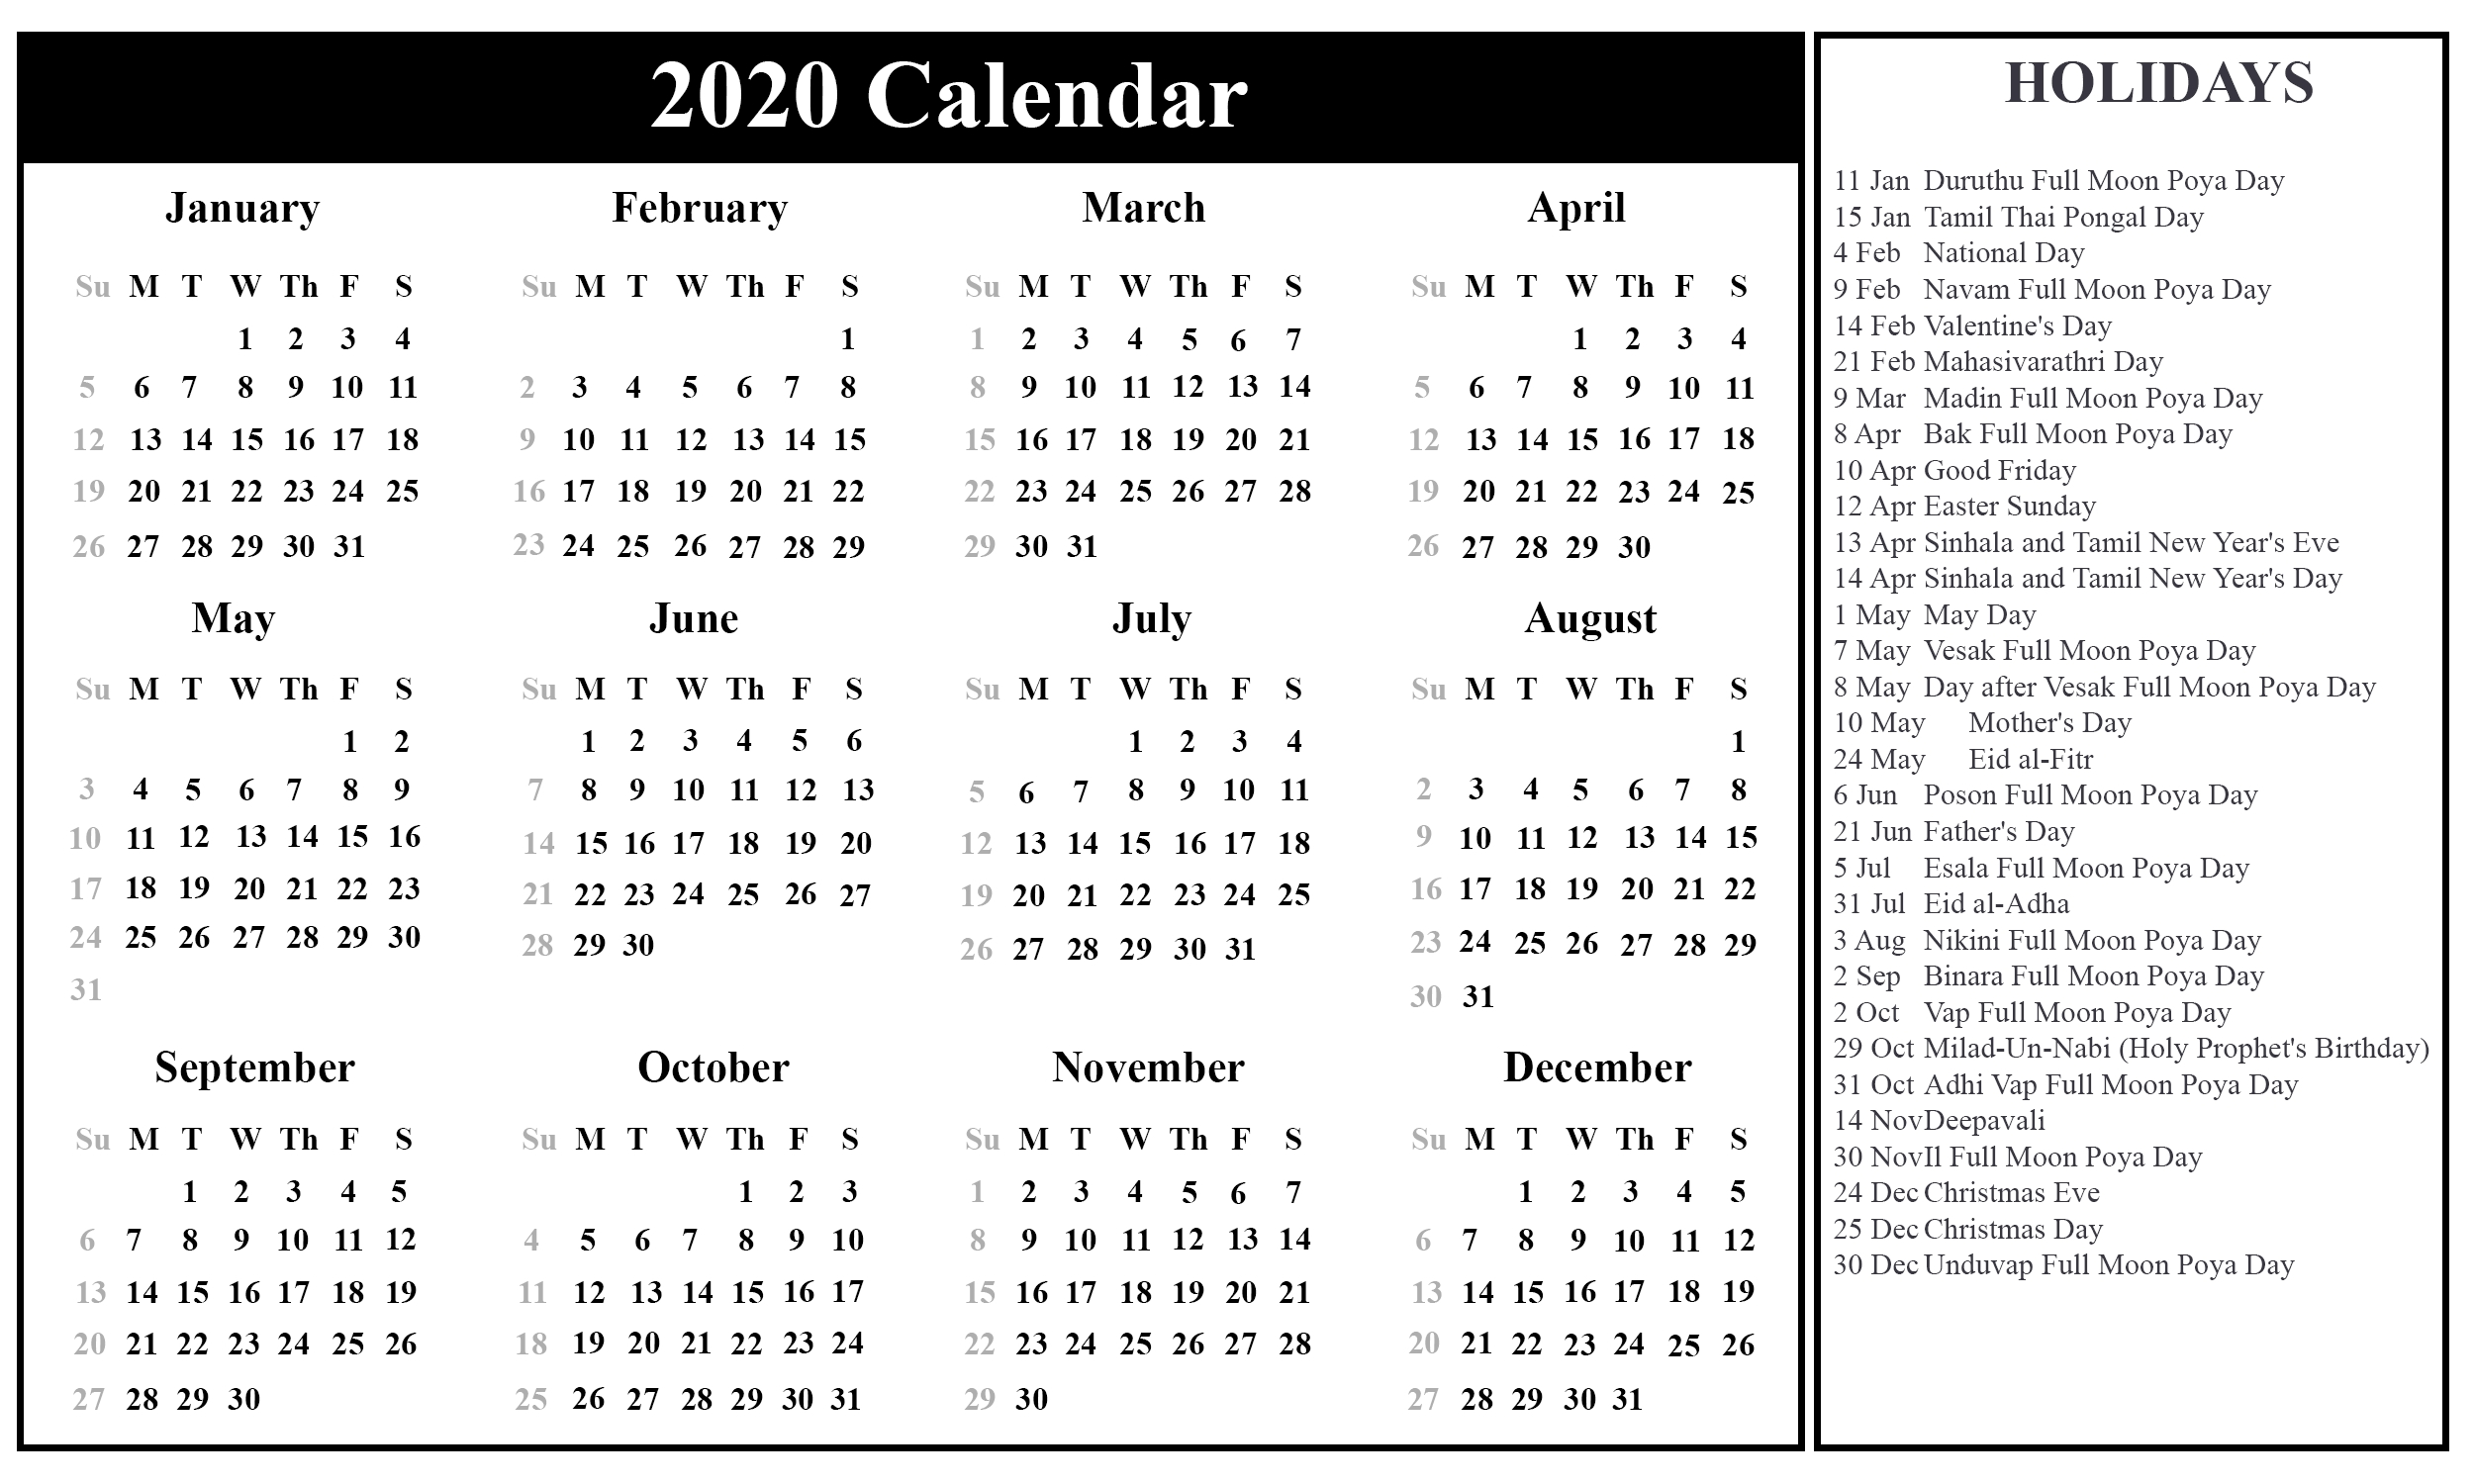 Free Sri Lanka 2020 Calendar With Holidays In Pdf Word-List Of Holidays By Month 2020